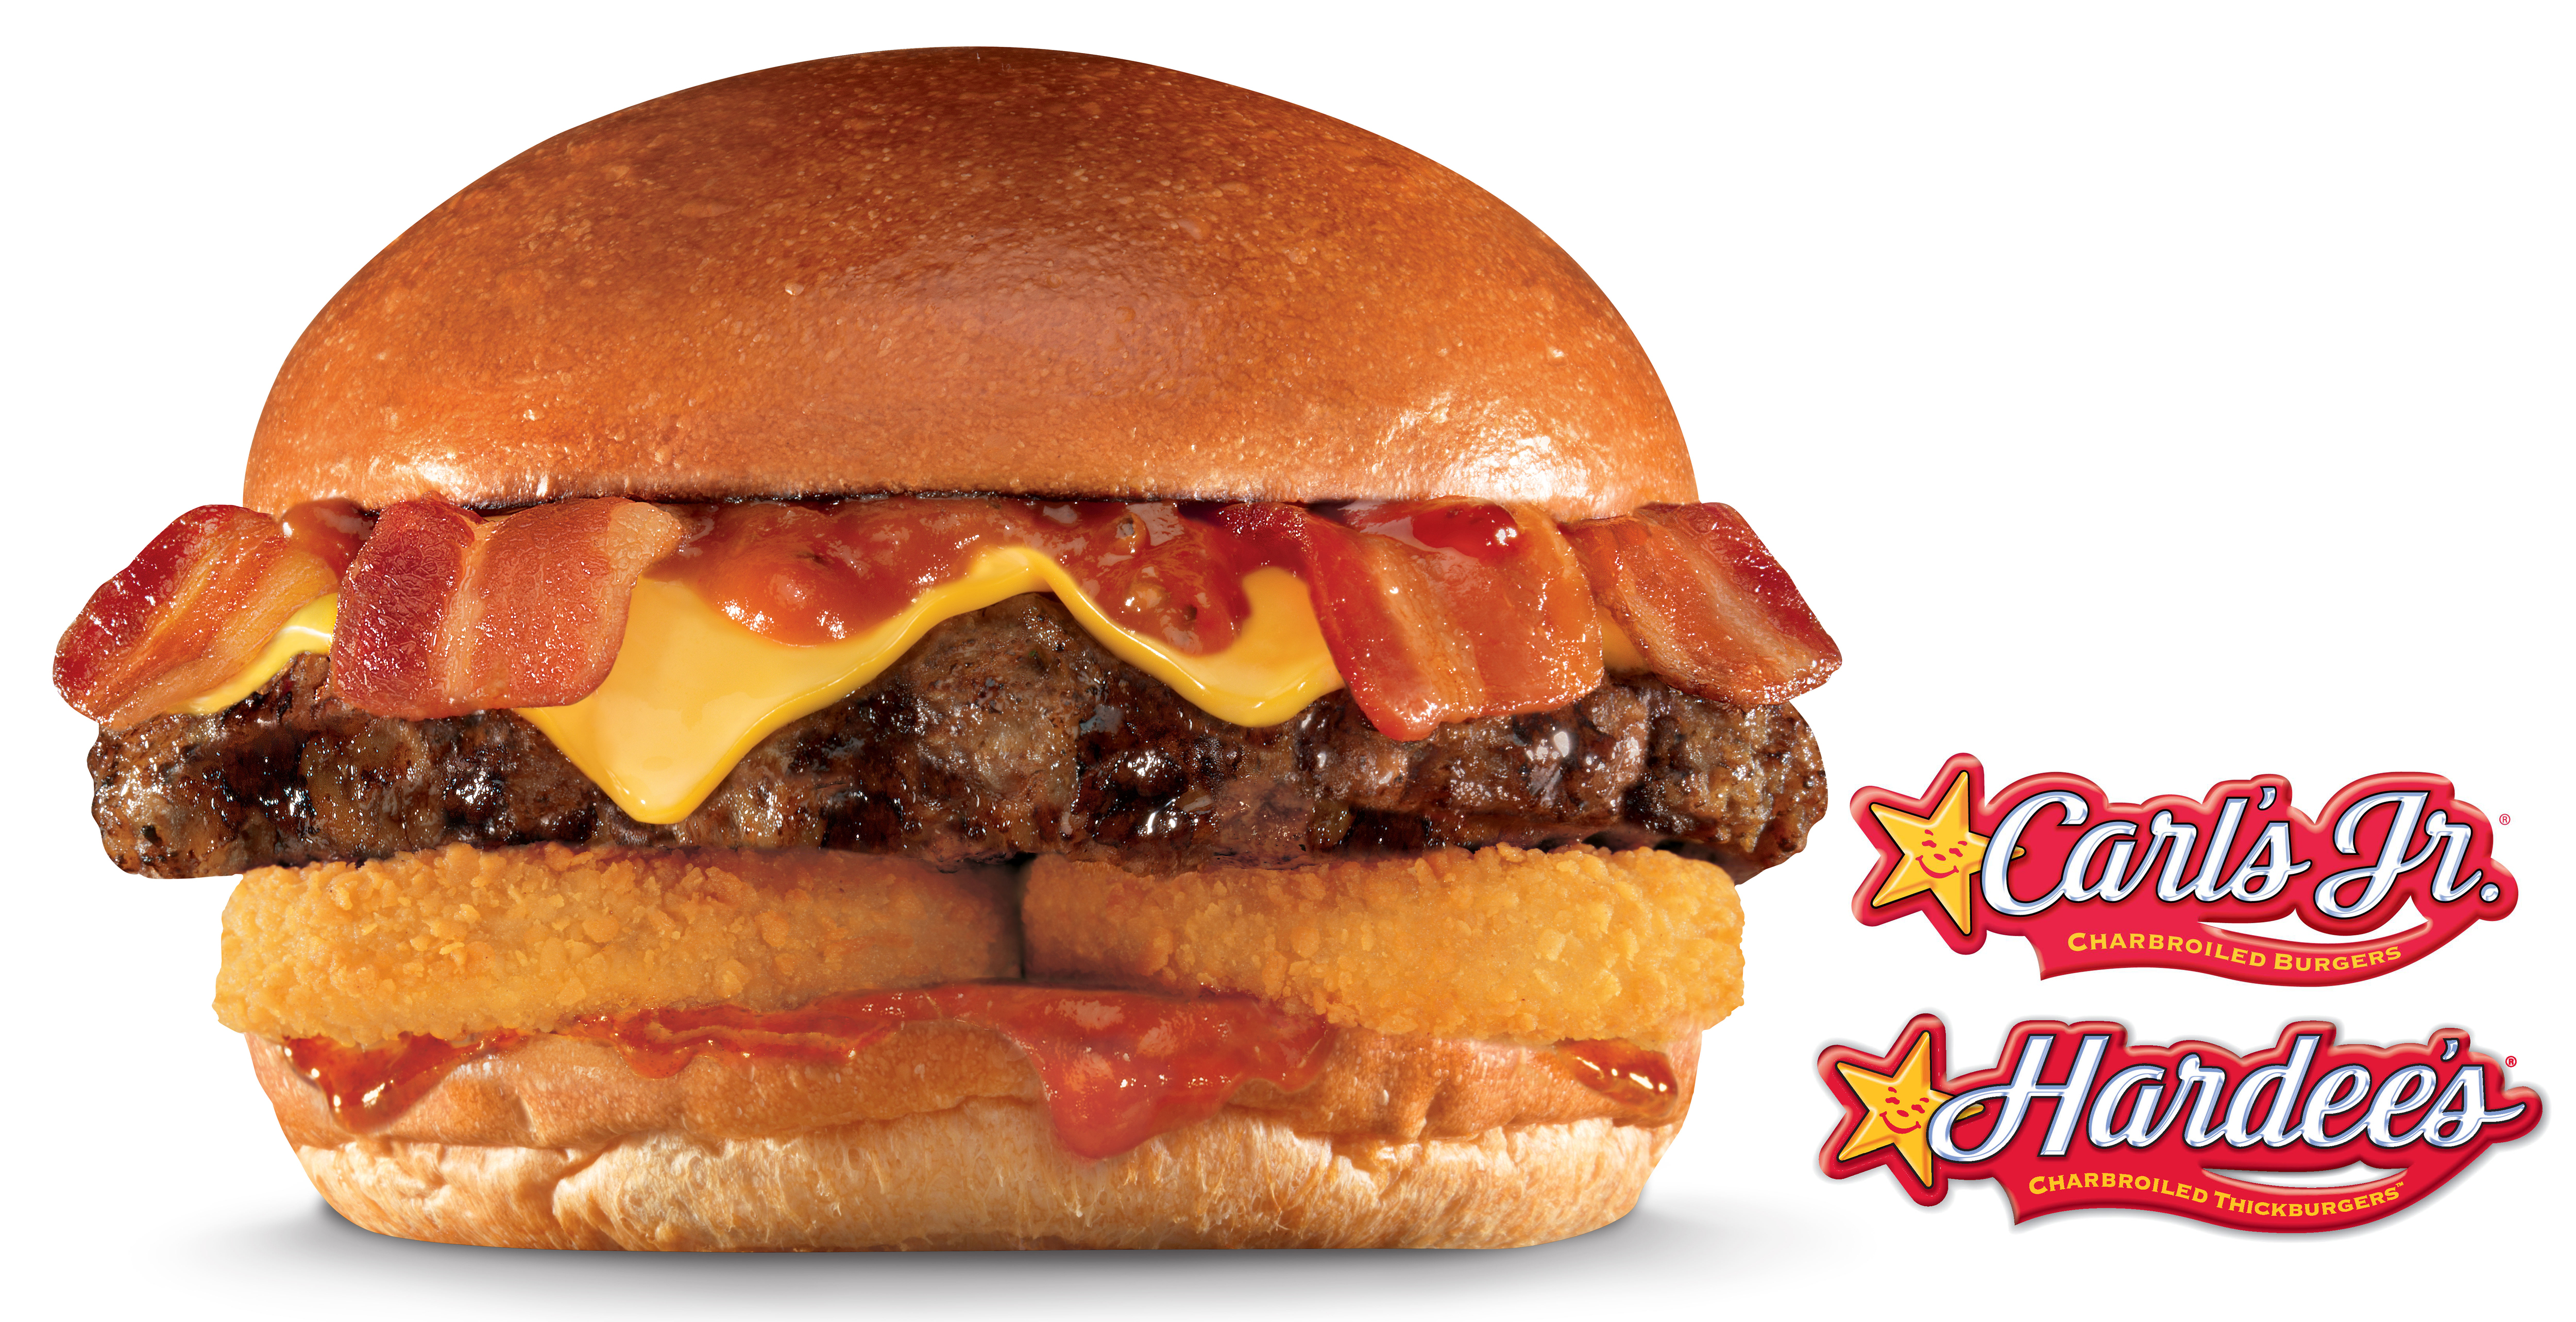 Featuring four strips of crispy bacon, twice the bacon of its classic menu counterpart, the new Western X-Tra Bacon Cheeseburger is available now at all participating Hardee's and Carl's Jr. locations as part of the restaurants' promotional tie-in with 20th Century Fox's release of X-Men: Days of Future Past, in theaters May 23. (Photo: Business Wire)